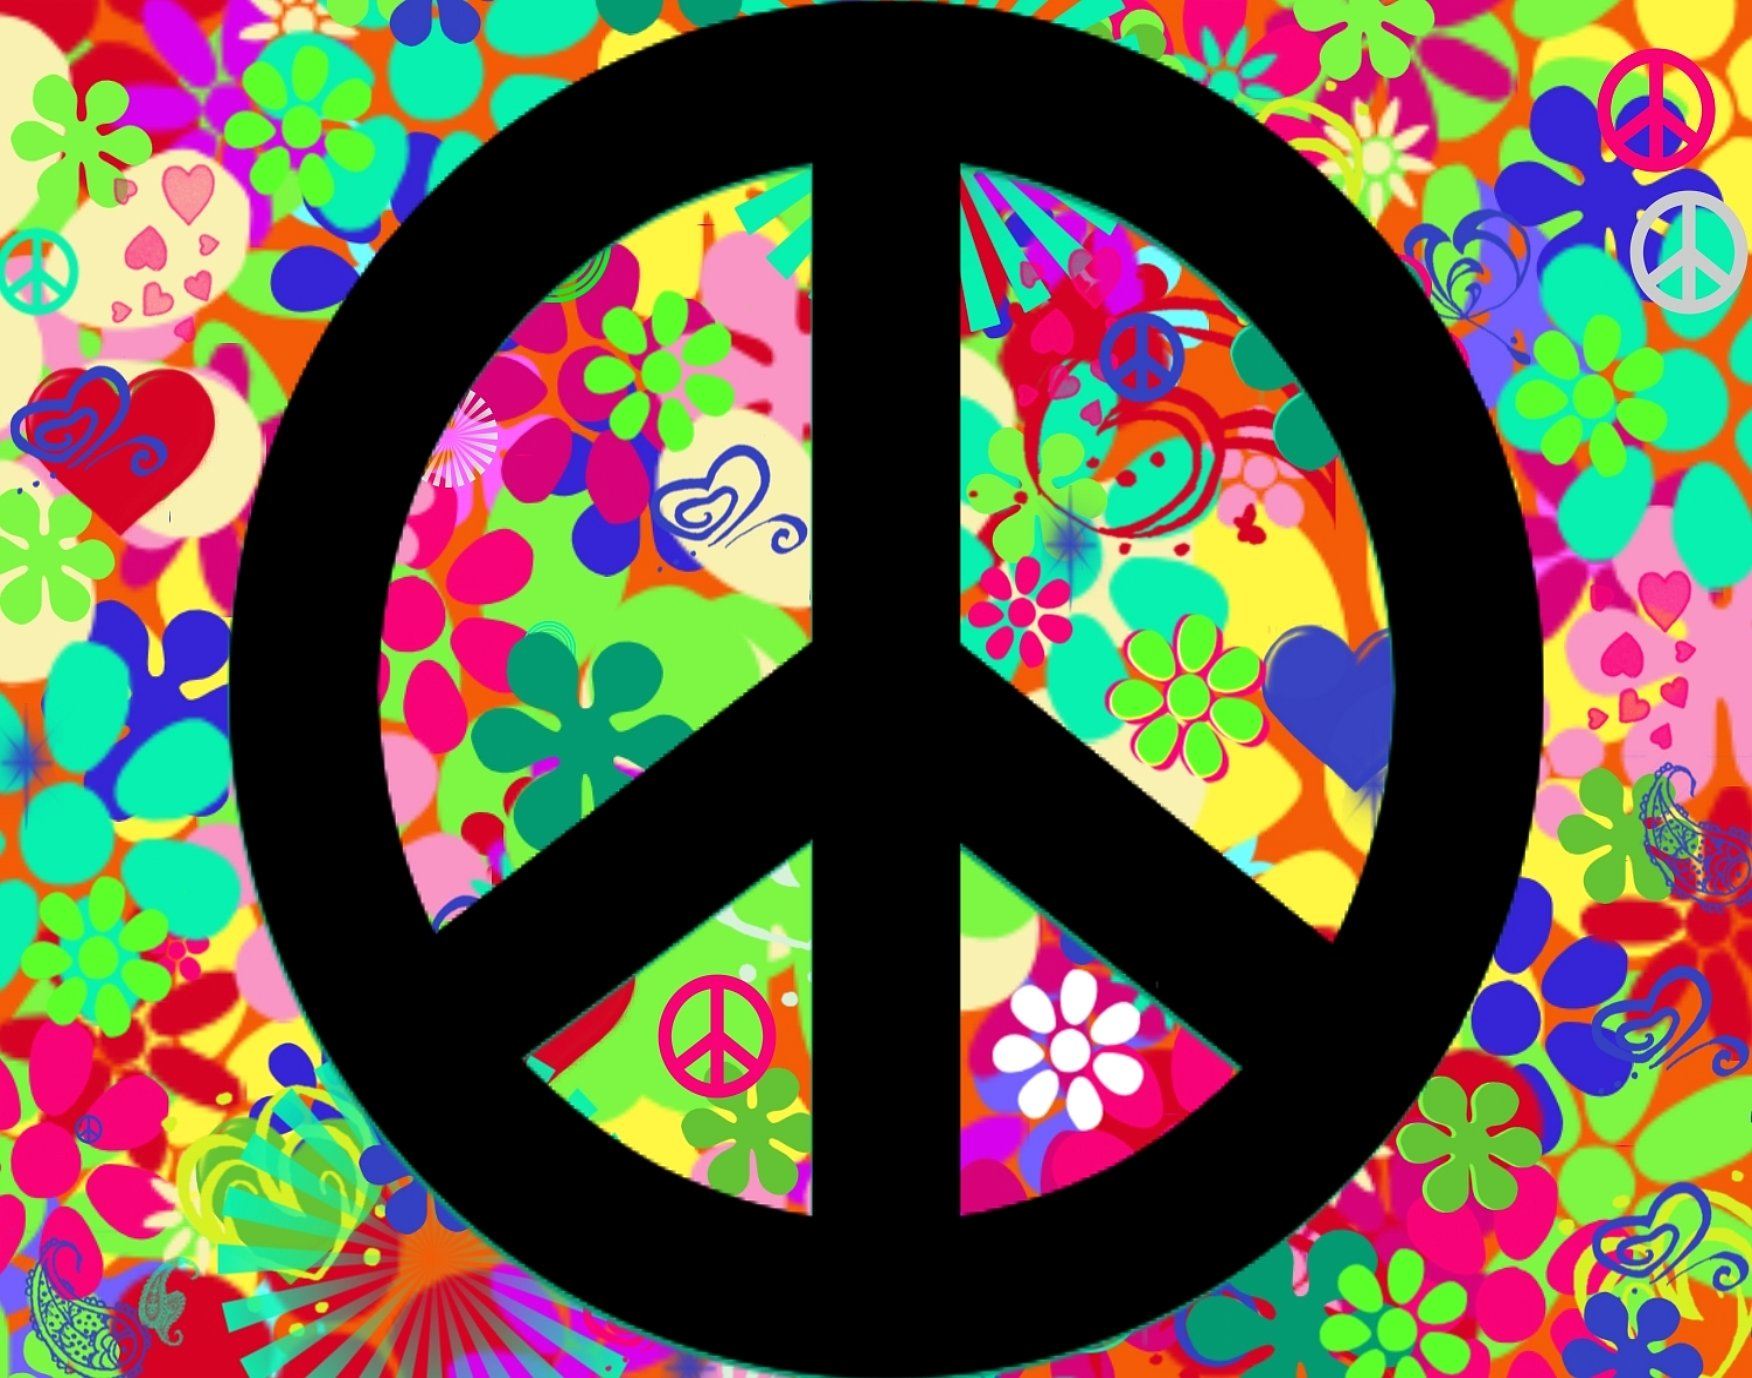 Related Pictures peace sign clip art backgrounds 1752x1378